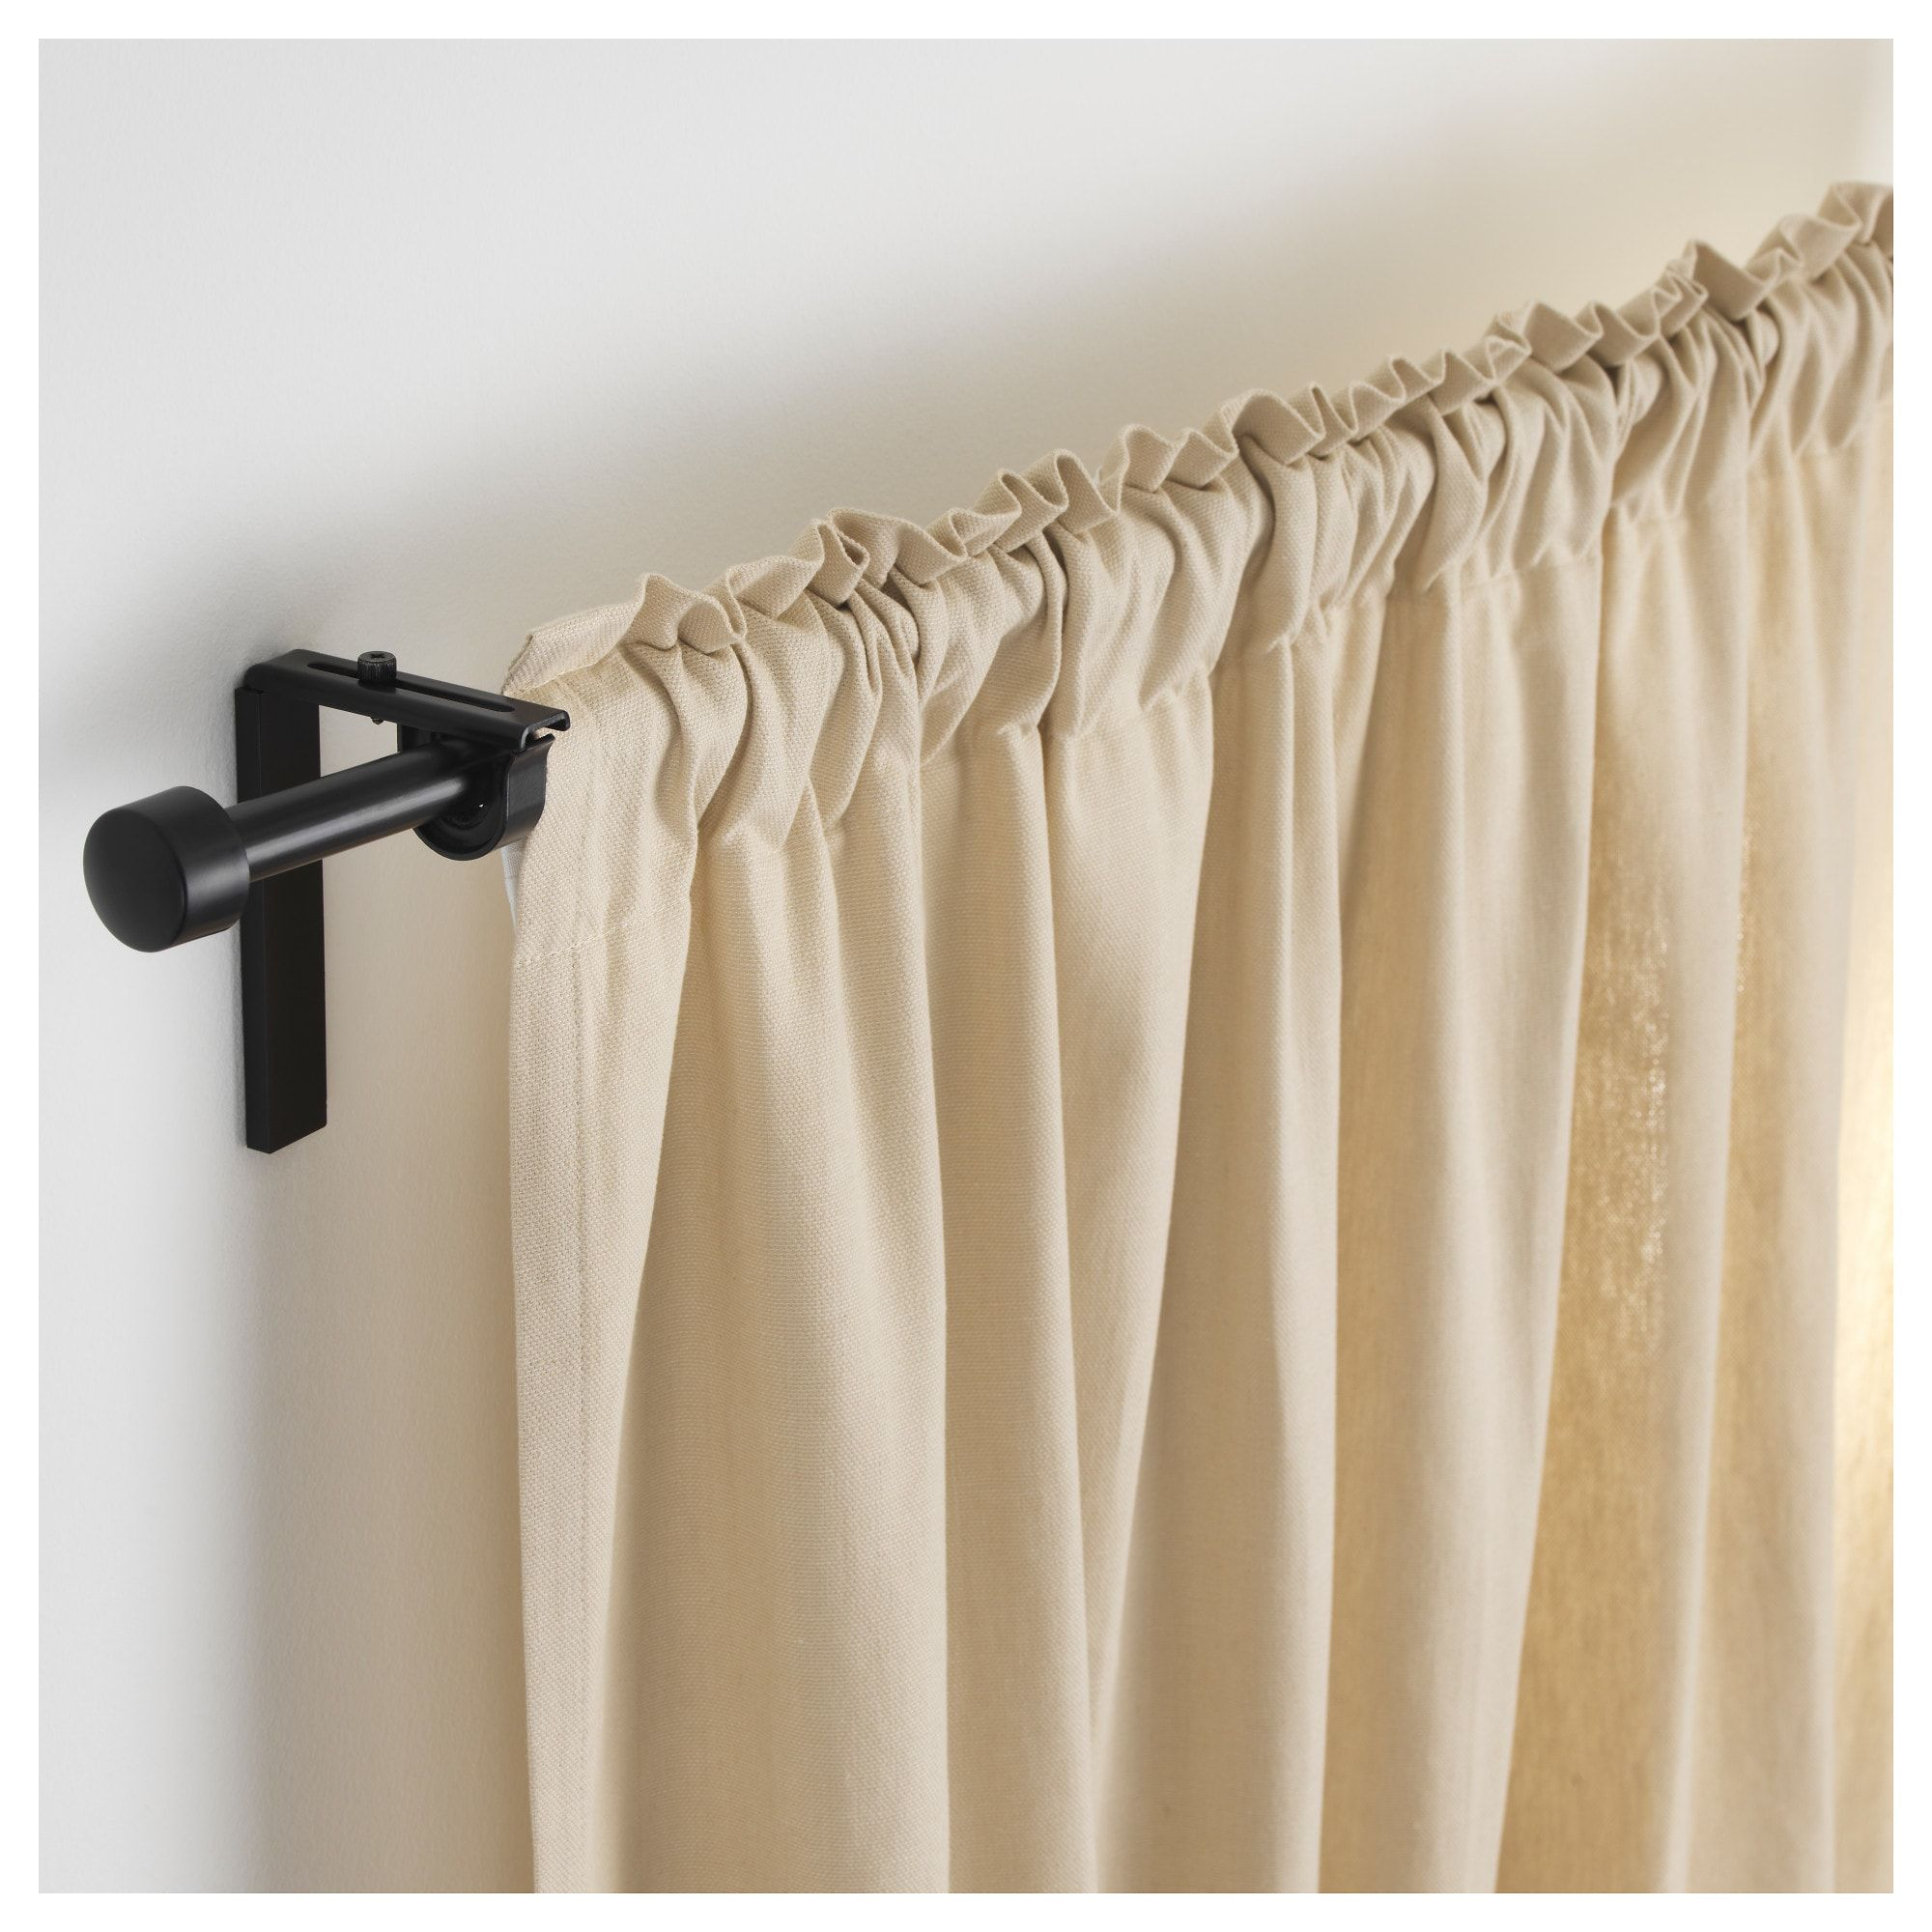 Ikea R 196 Cka Curtain Rod Black In 2019 Products Black